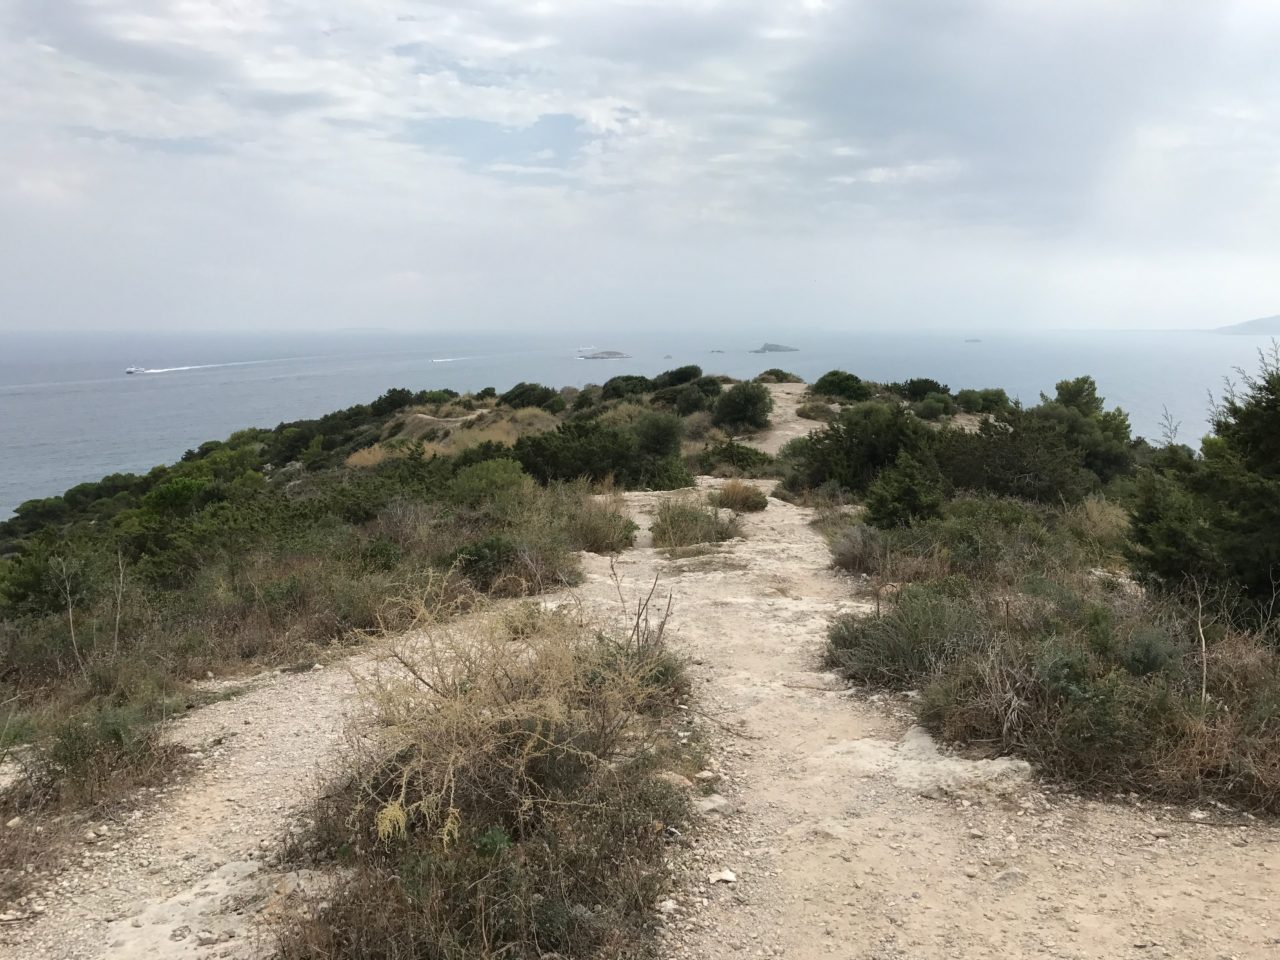 Mountain Dirt Pathway With Brush And Grass By The Ocean